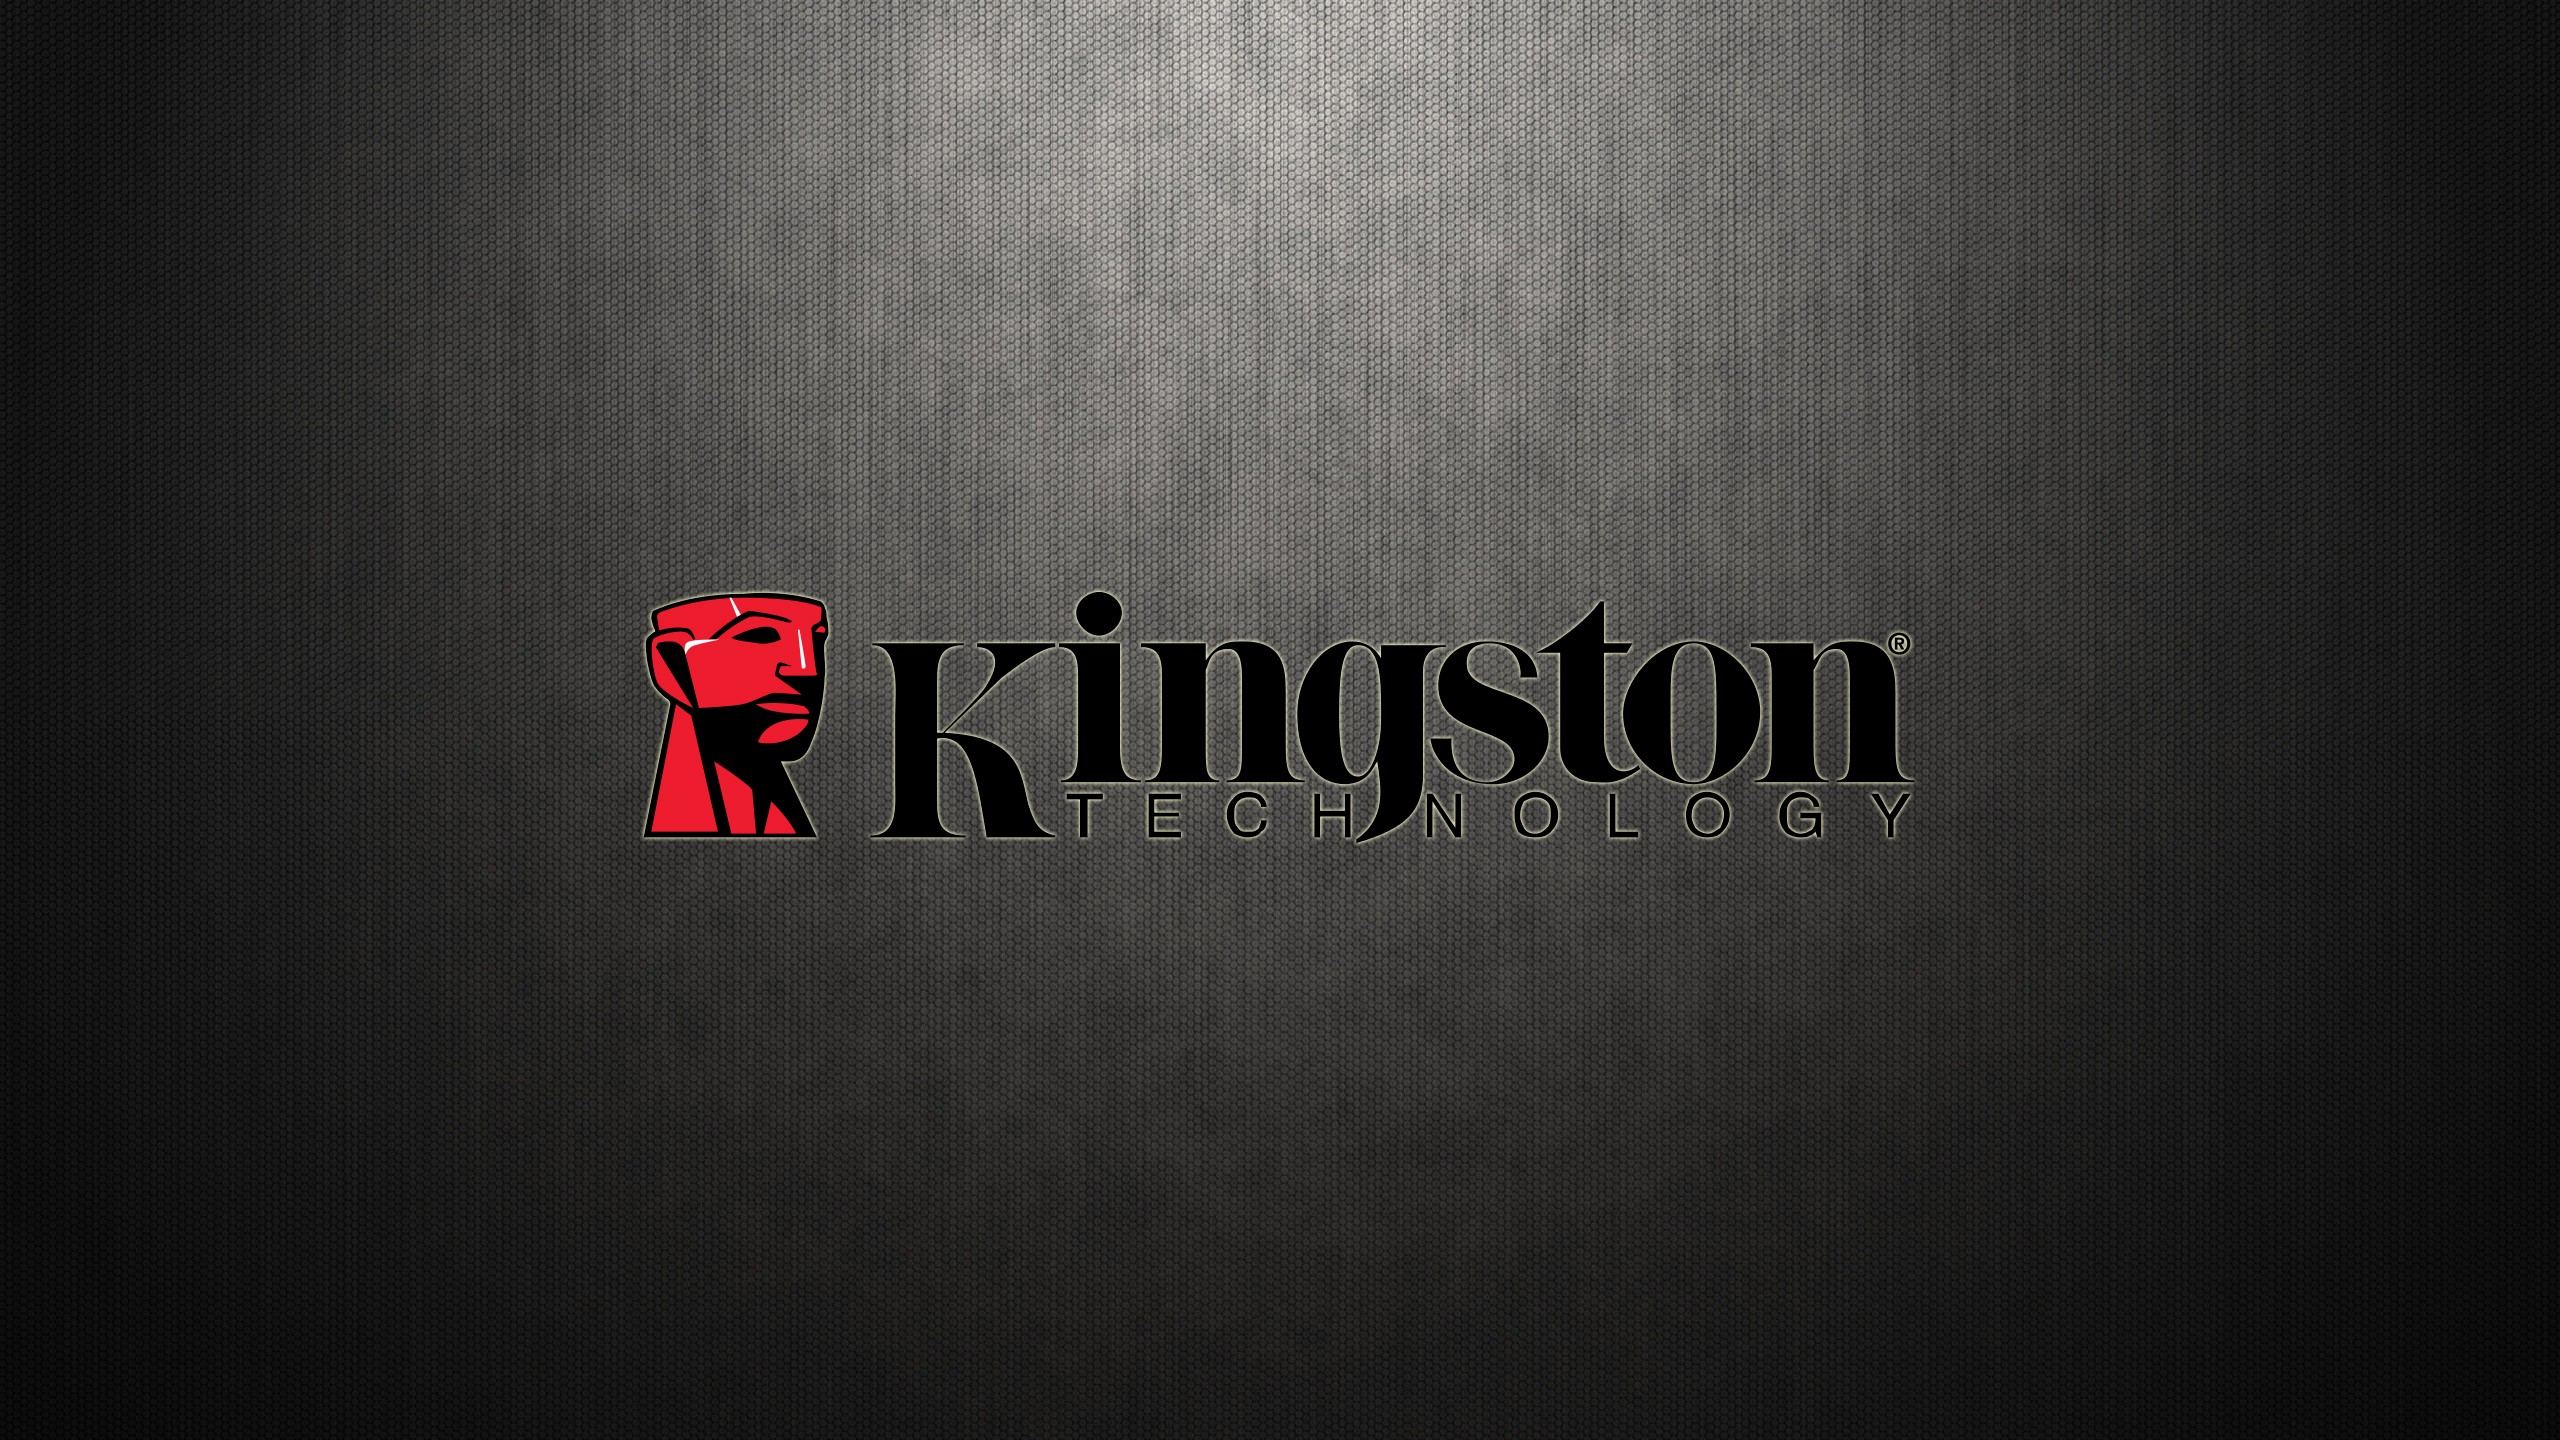 Amazoncom Kingston Technology Company Inc